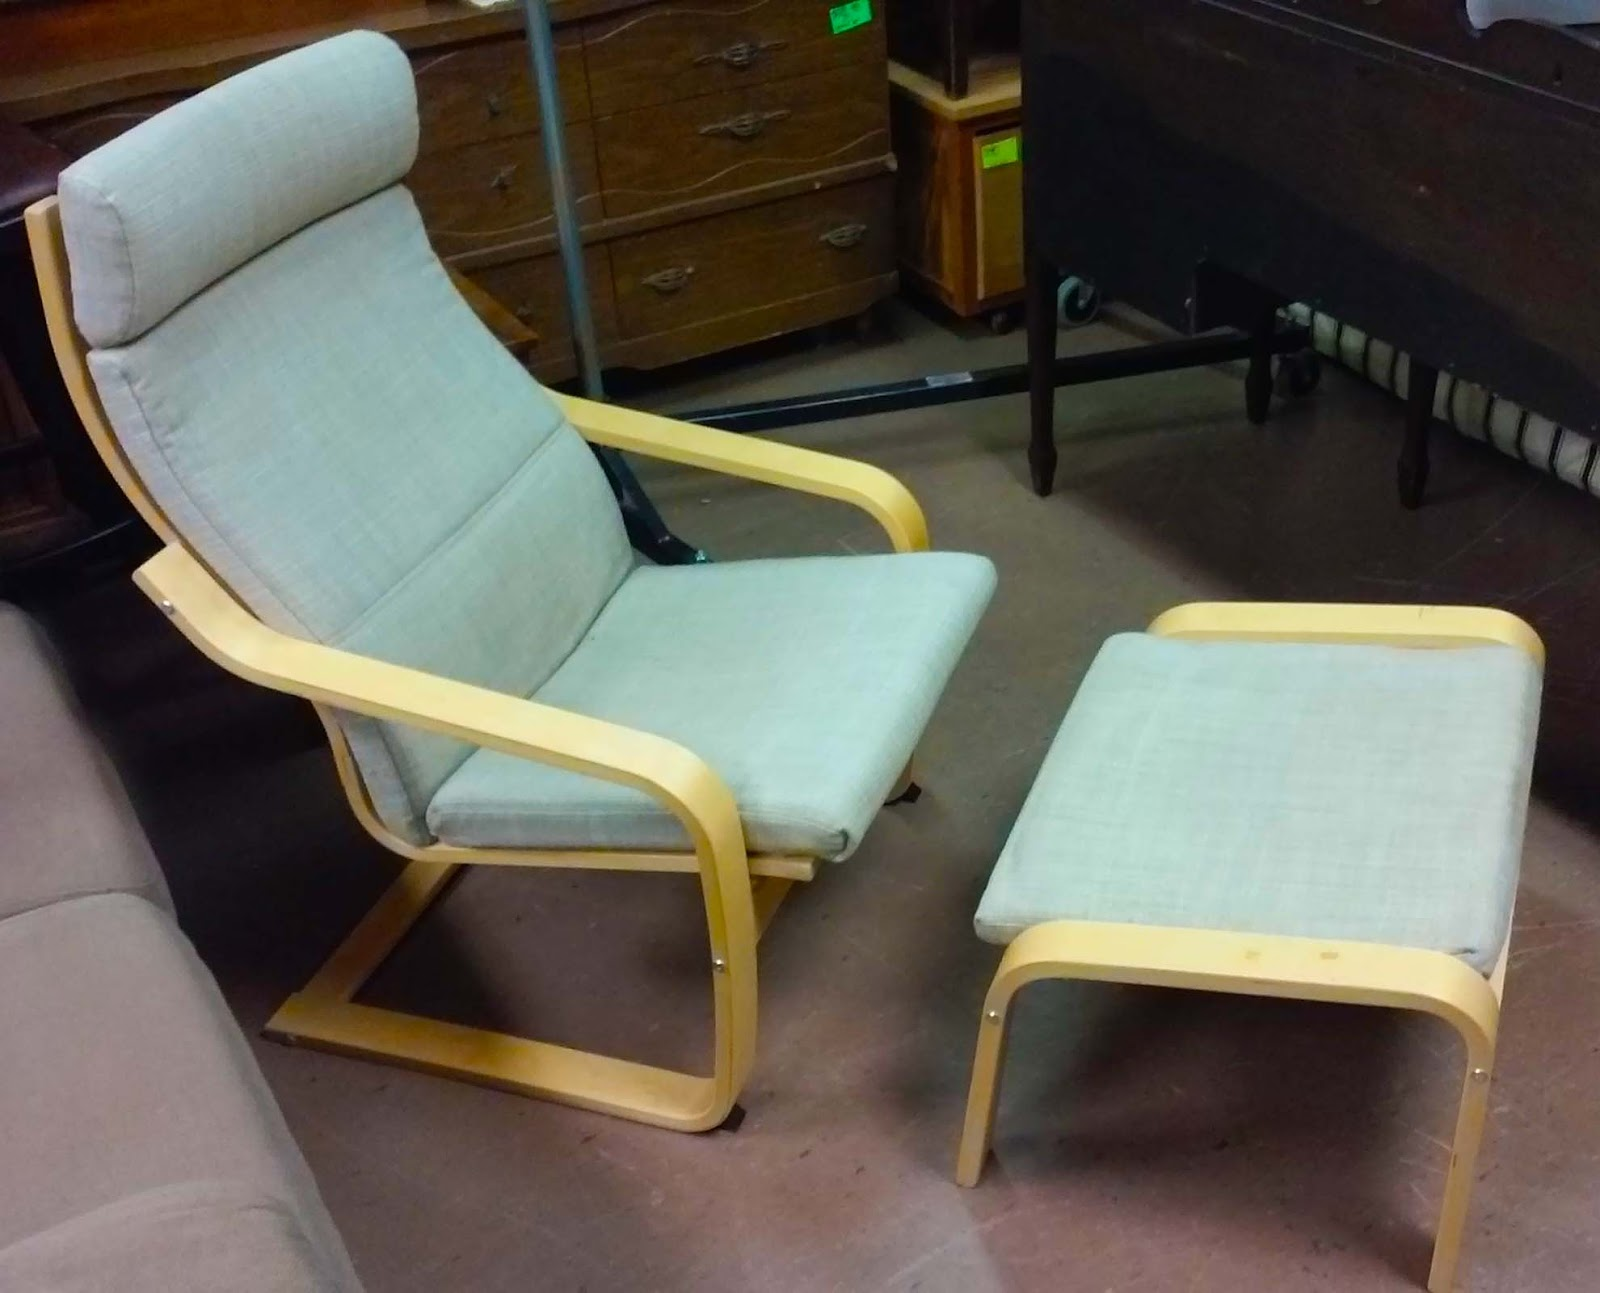 Uhuru furniture collectibles sold poang ikea chair for Ikea chair with ottoman